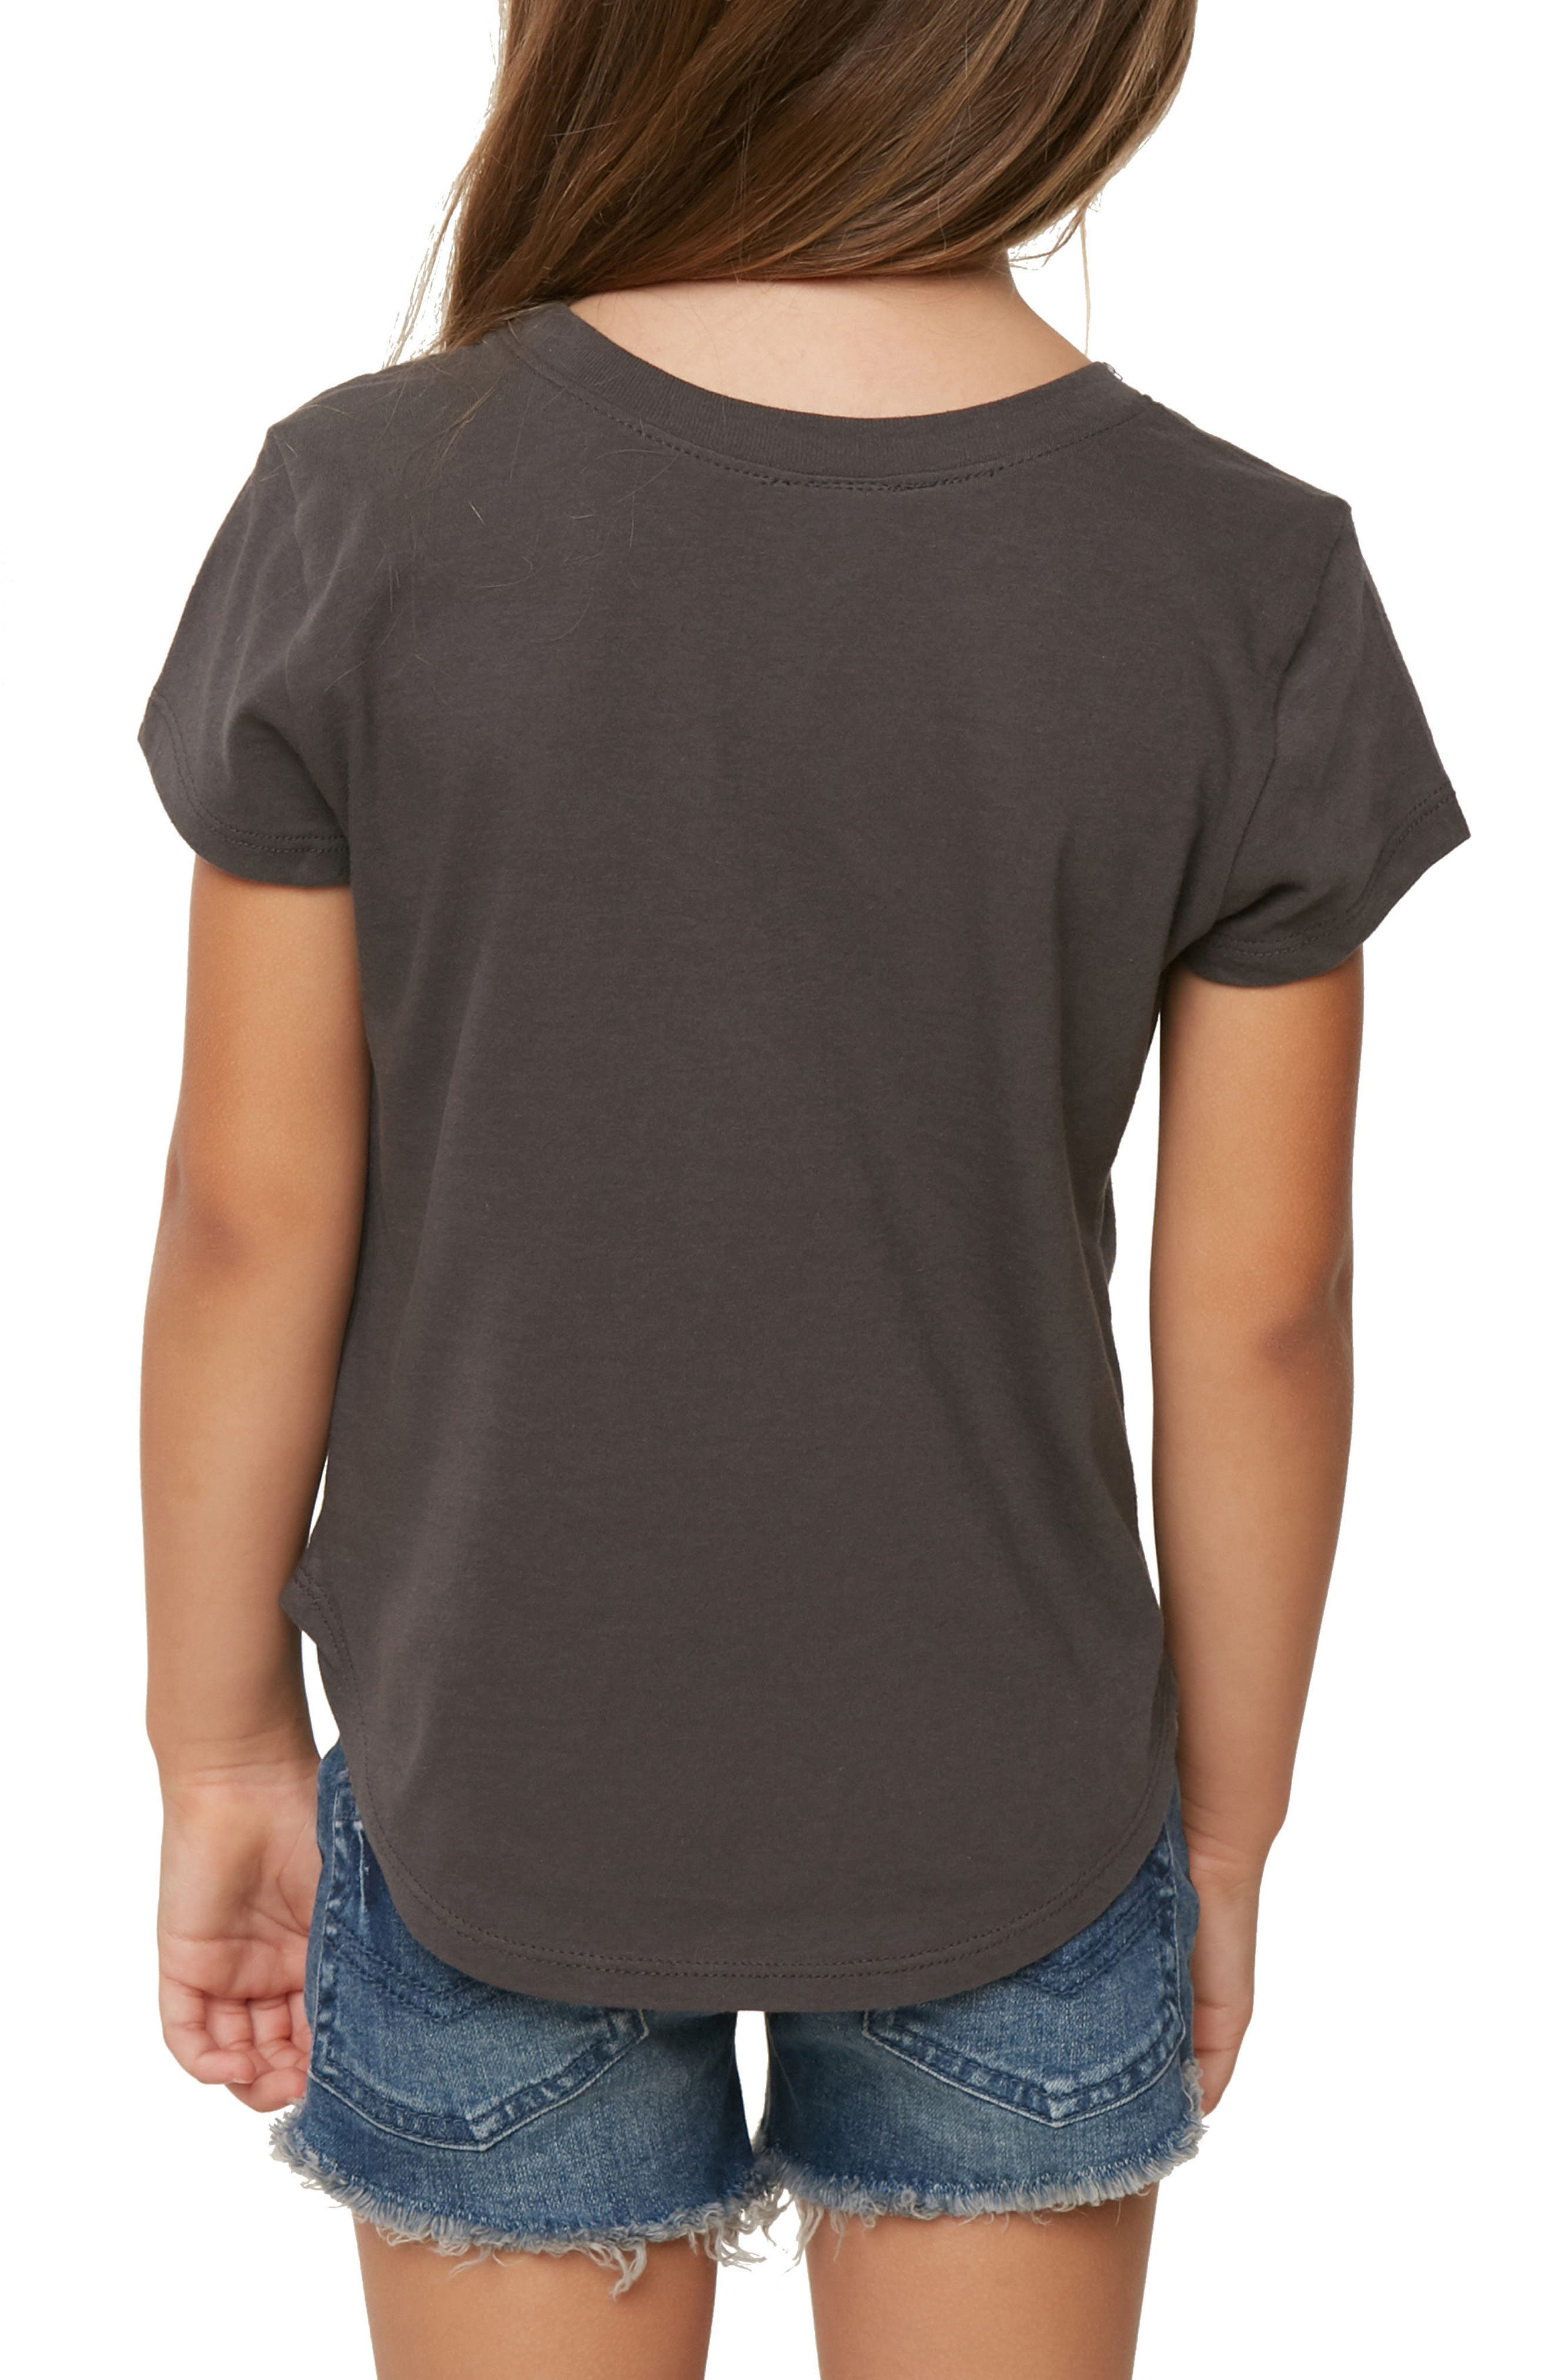 Sol Search Tee,                             Alternate thumbnail 4, color,                             Washed Black